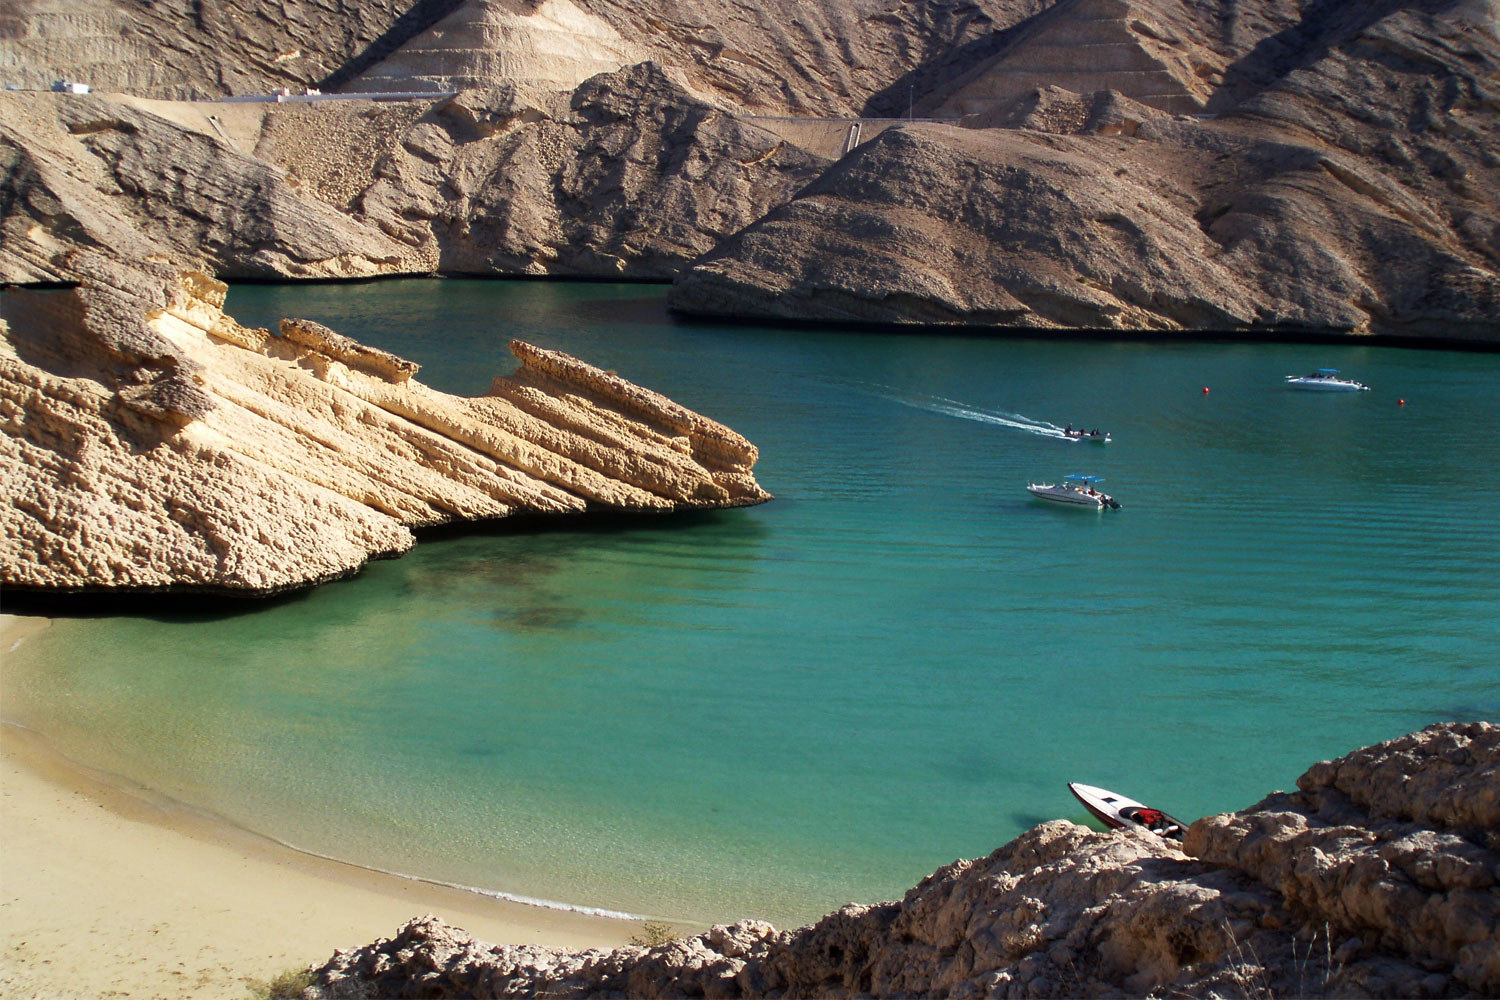 A beach surrounded by rocky cliffs in Oman.